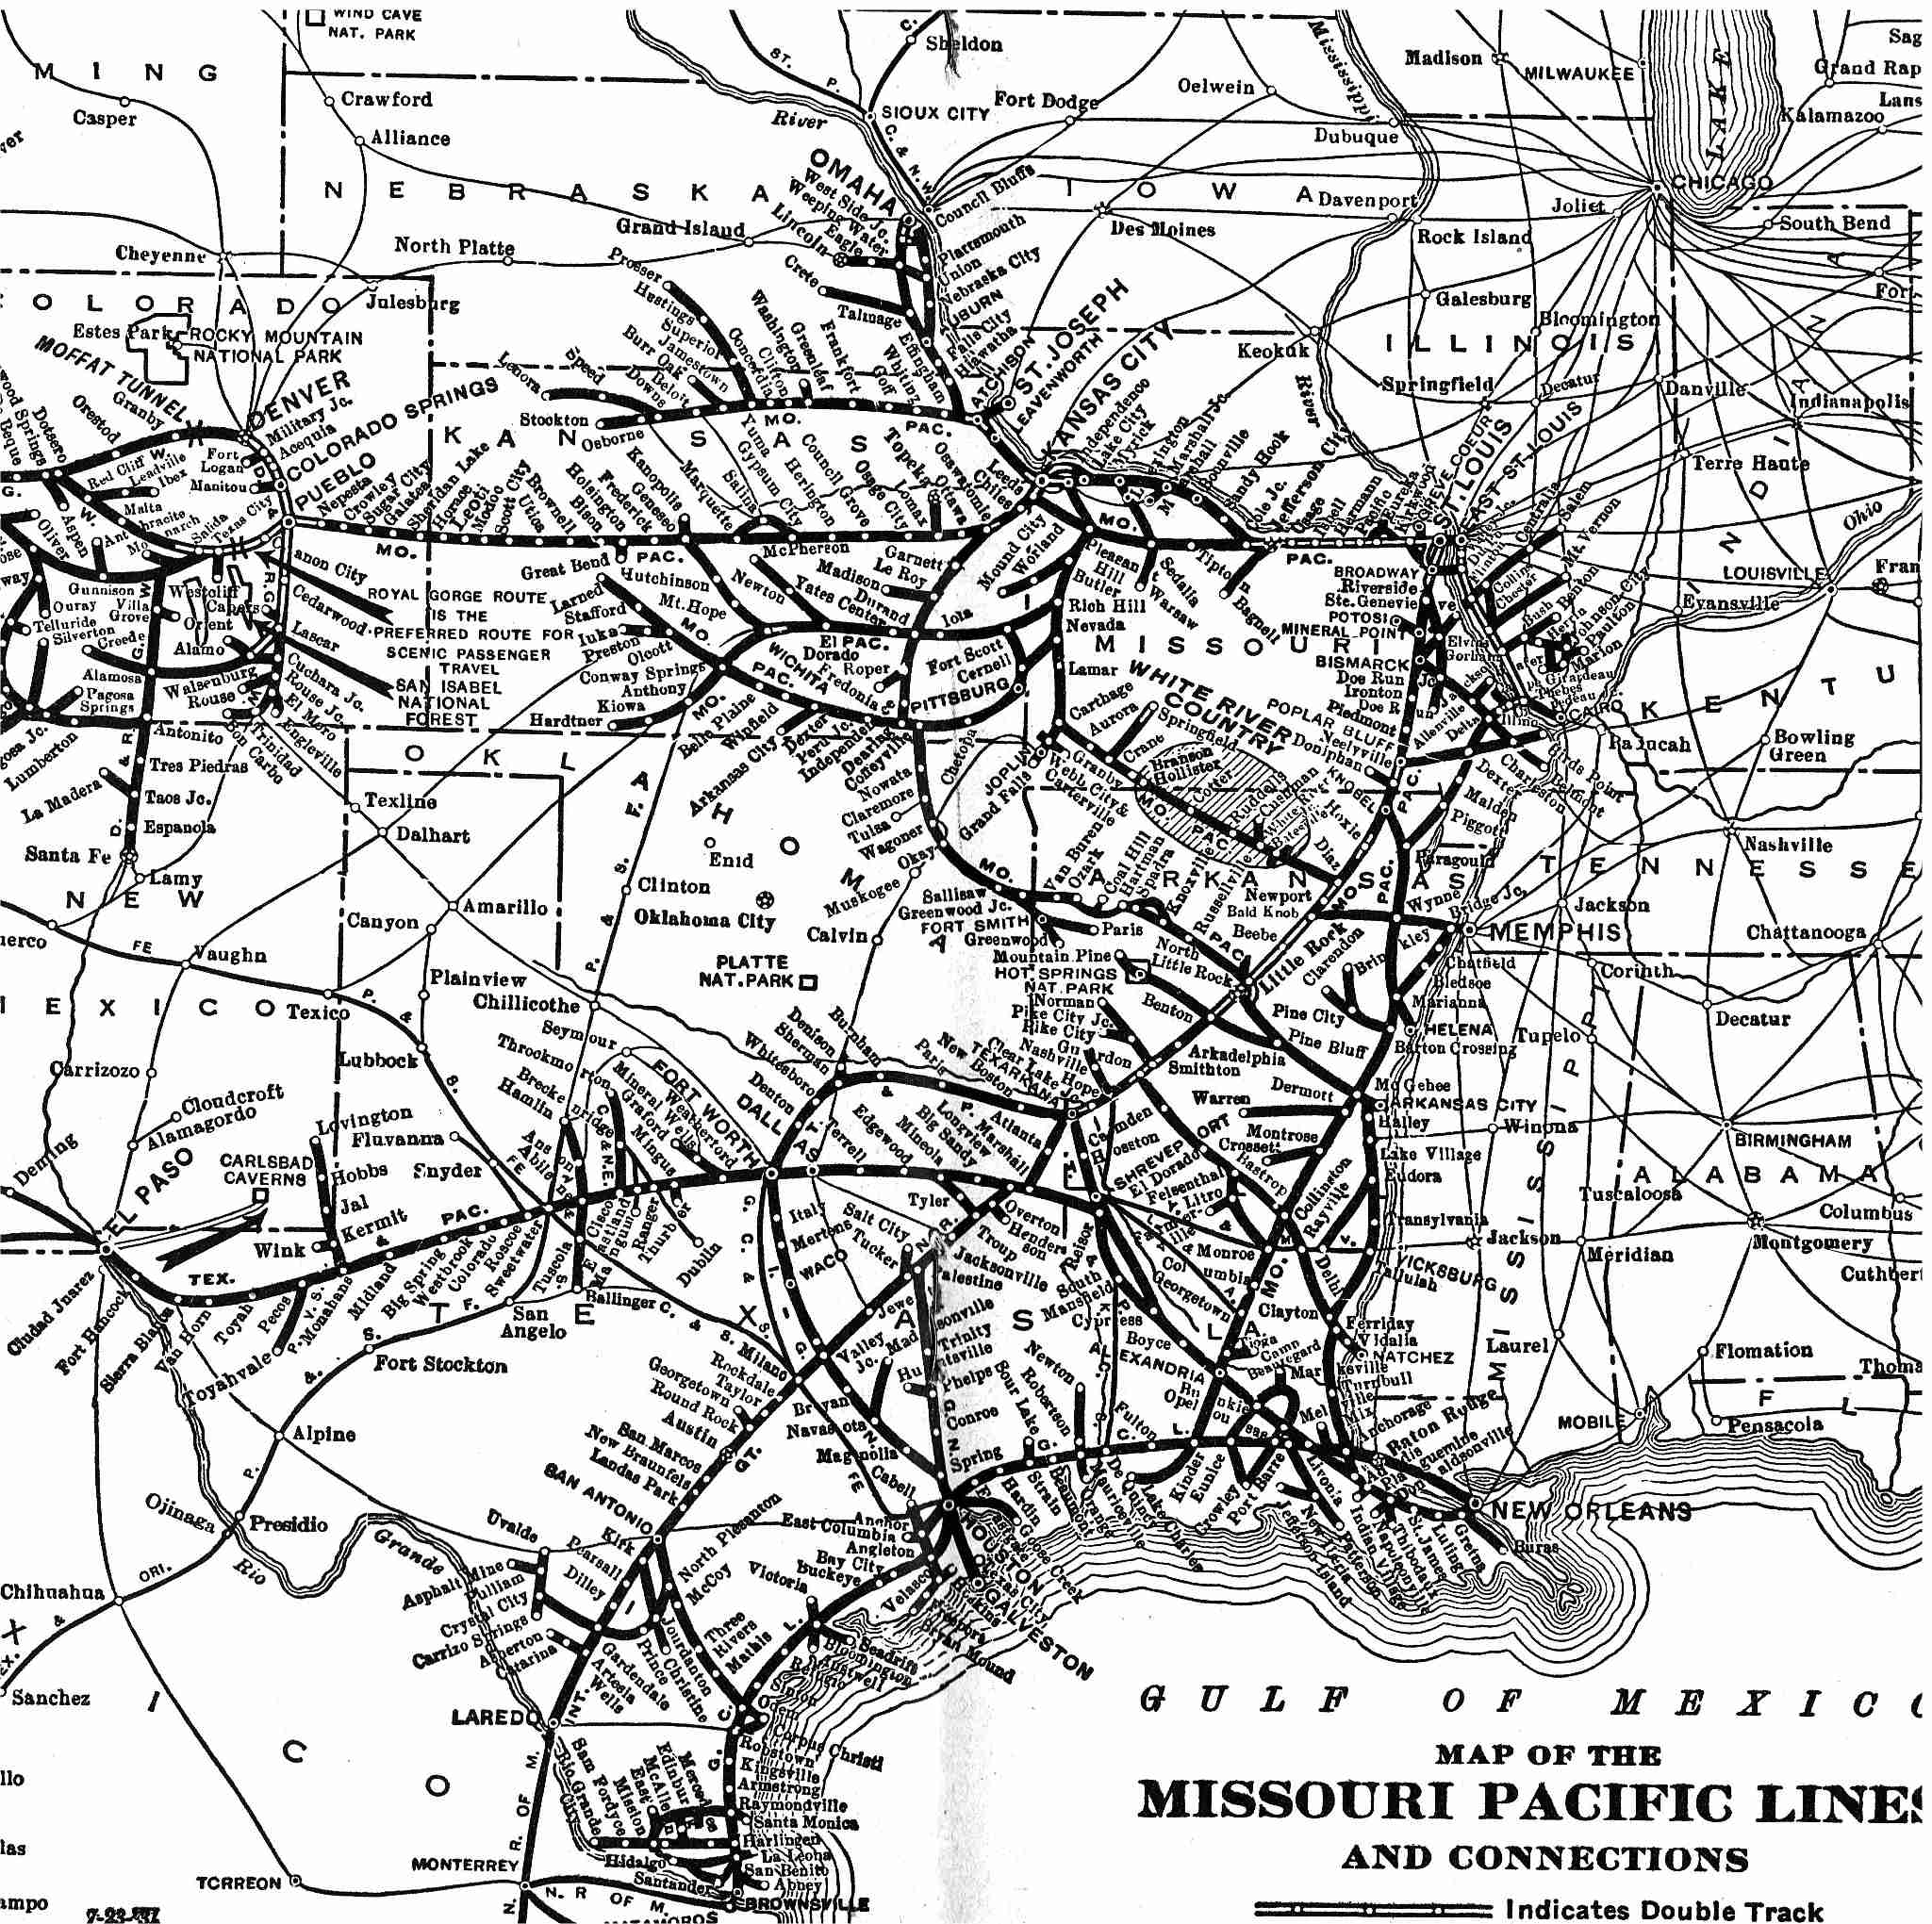 Missouri Pacific Railroad Map the Missouri Pacific RR System Map